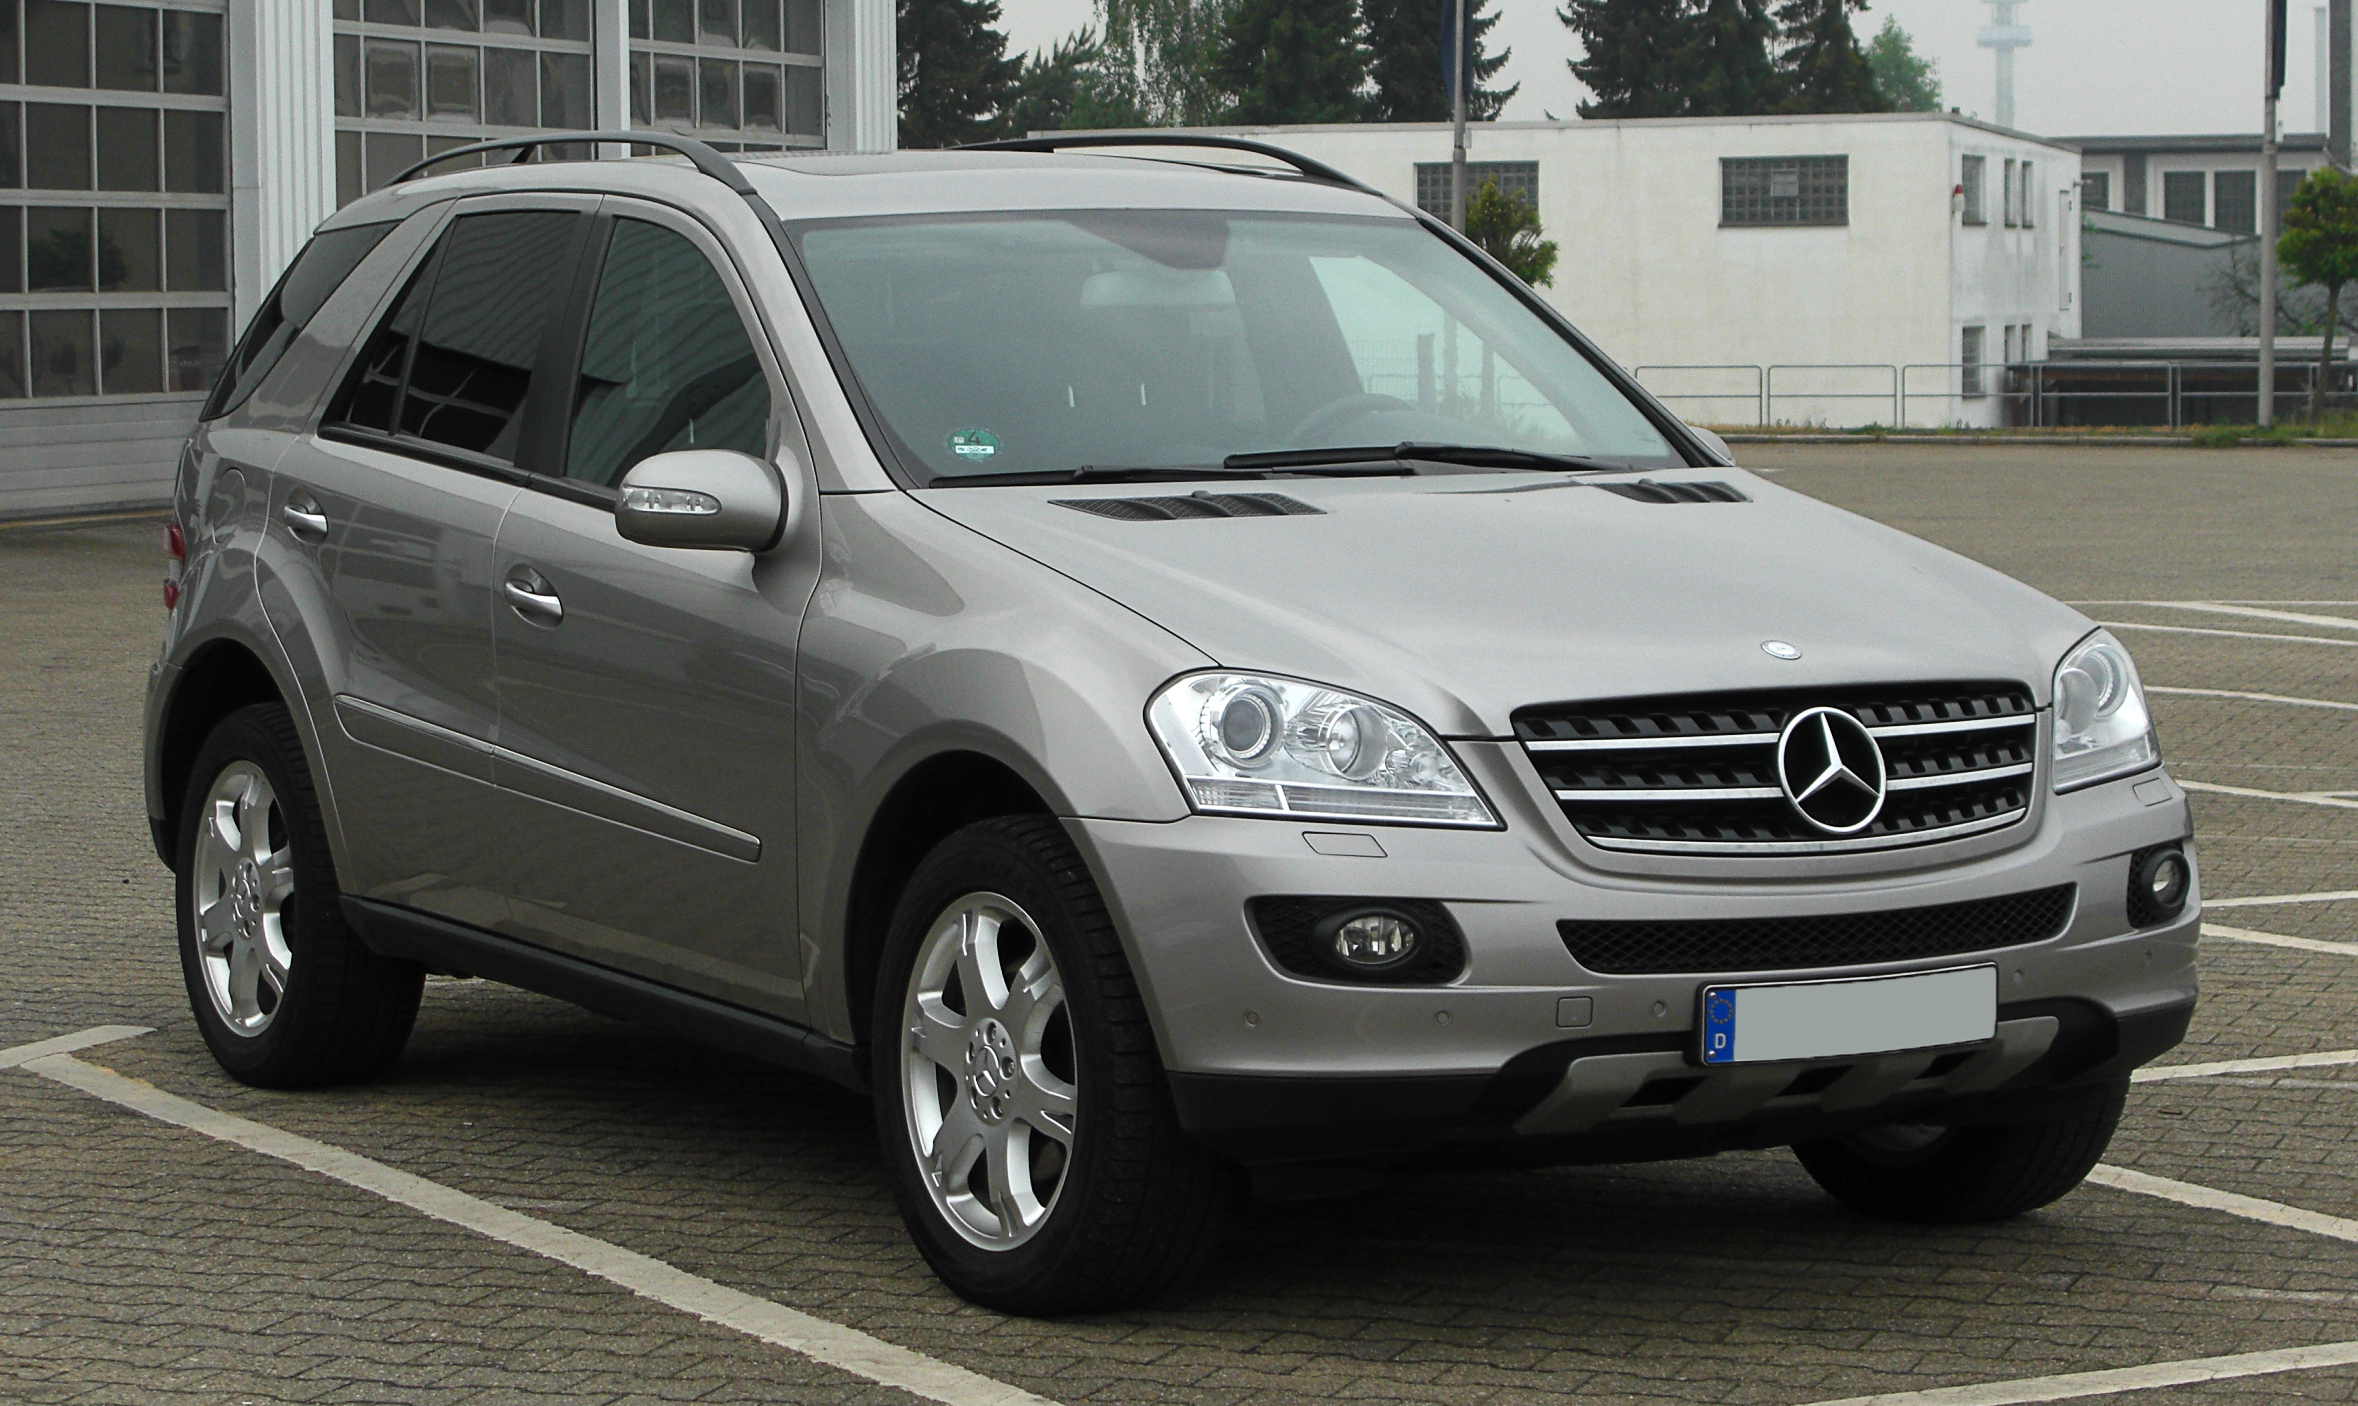 Mercedes benz ml 320 cdi technical details history for Www mercedes benz parts